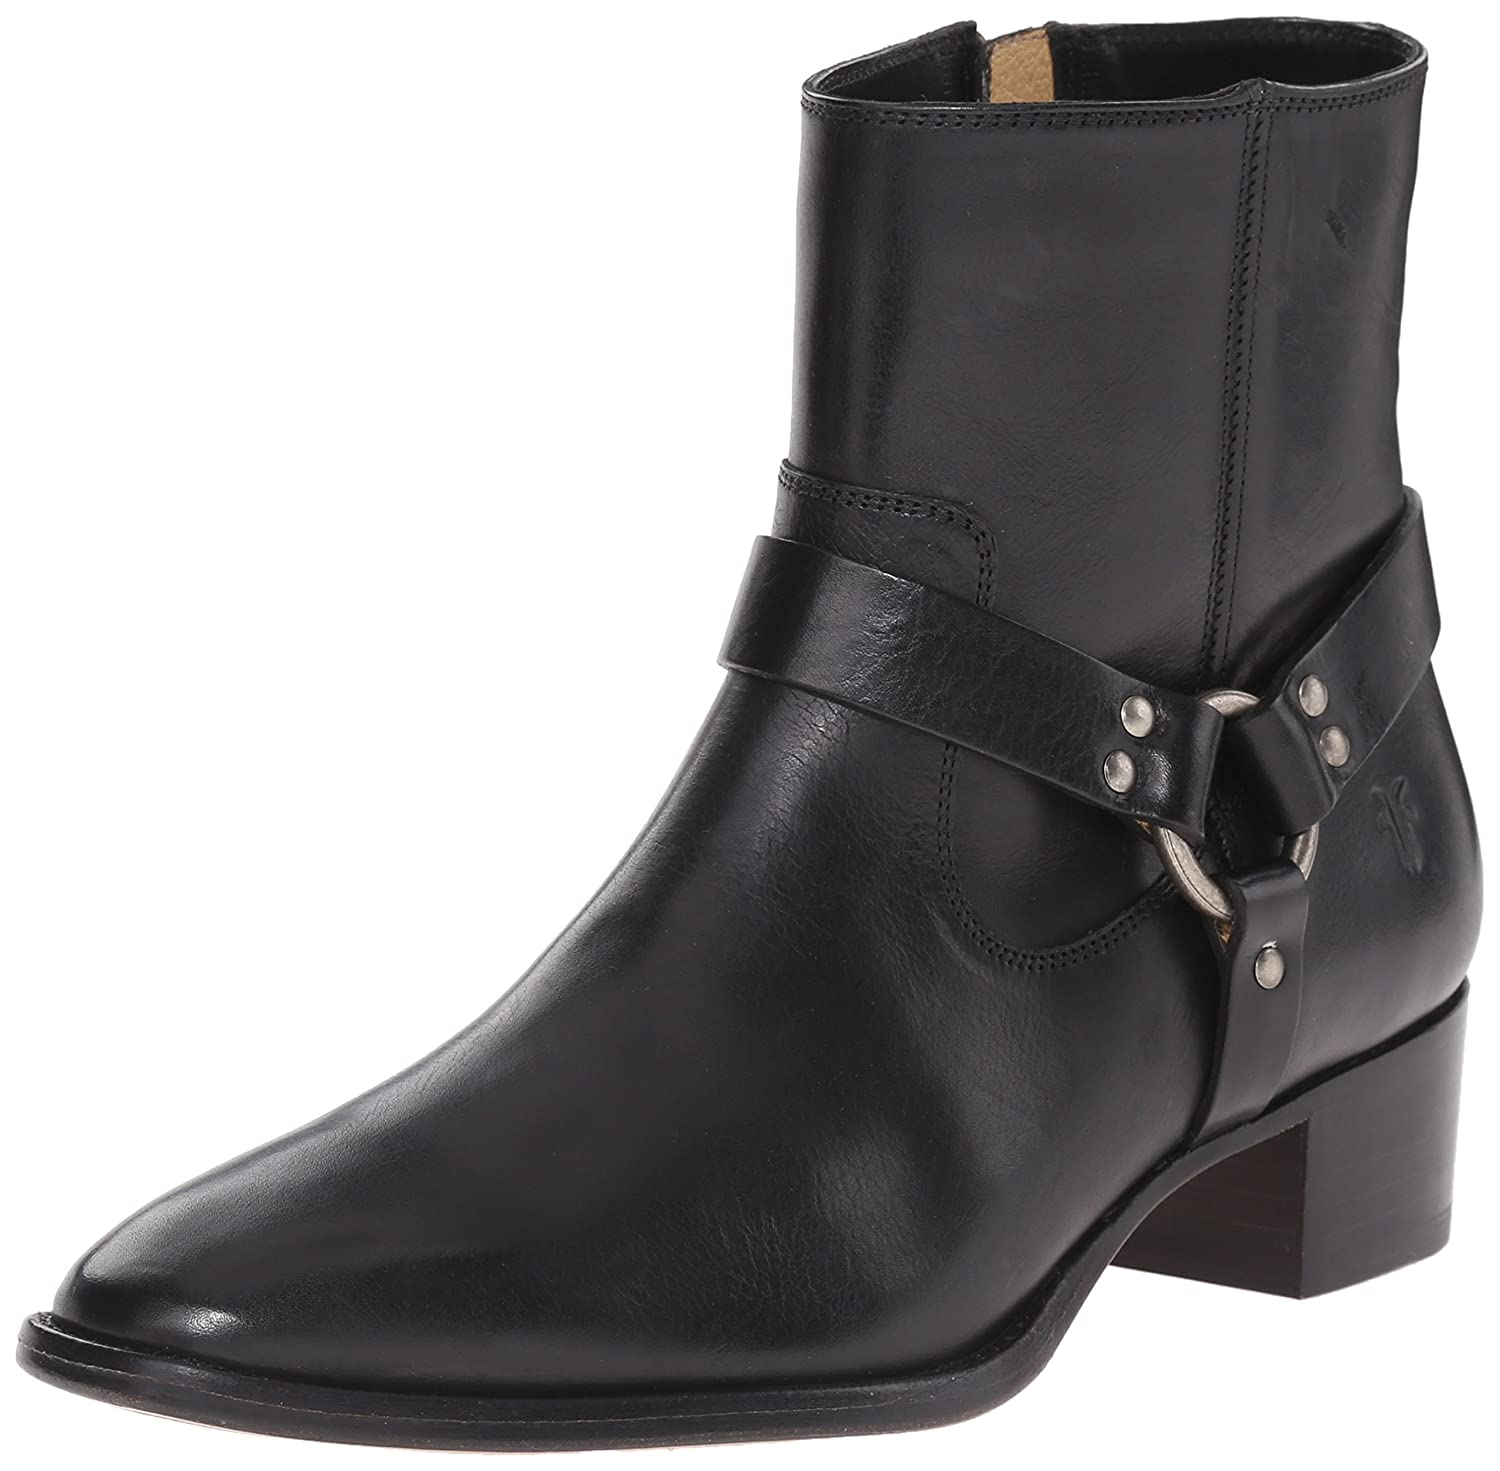 FRYE Women's Dara Short Harness Boot B00ZUYIX4G 5.5 B(M) US|Black Smooth Polished Veg Leather